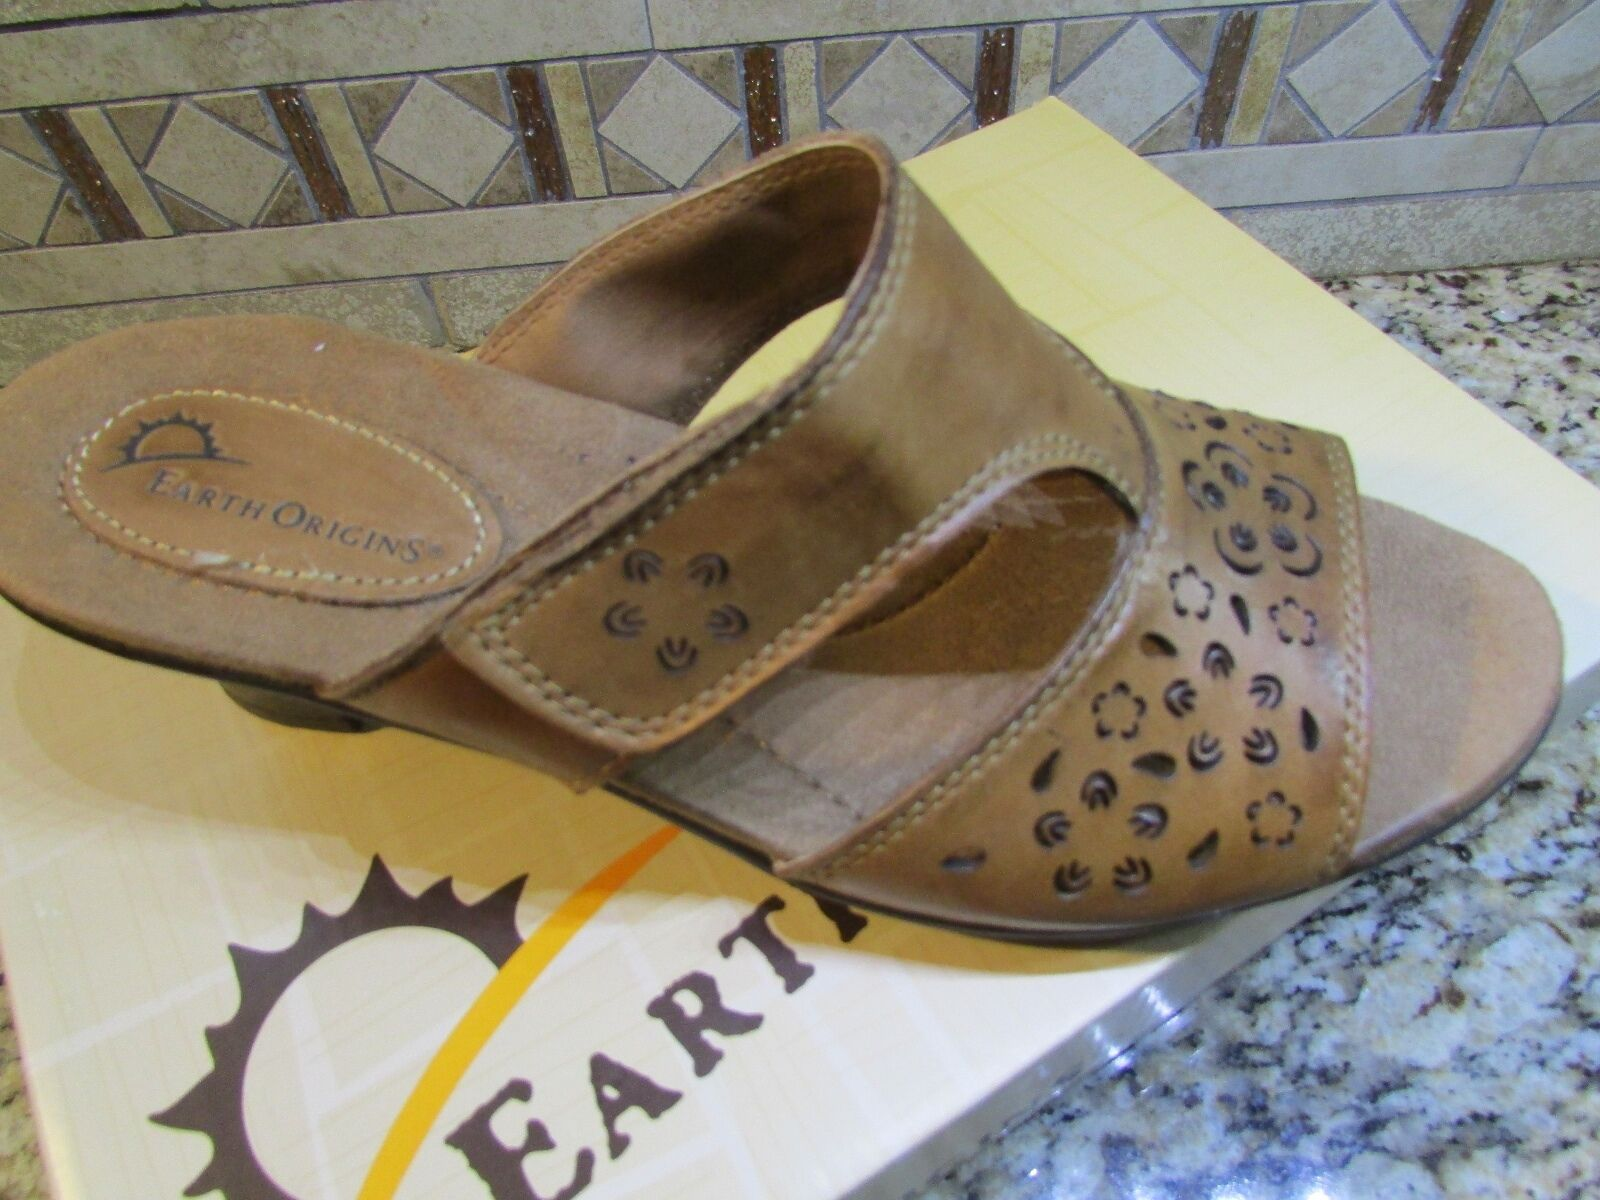 NEW EARTH ORIGINS TRIXIE SANDALS WOMENS 6.5 BROWN LEATHER SLIDES   FREE SHIP